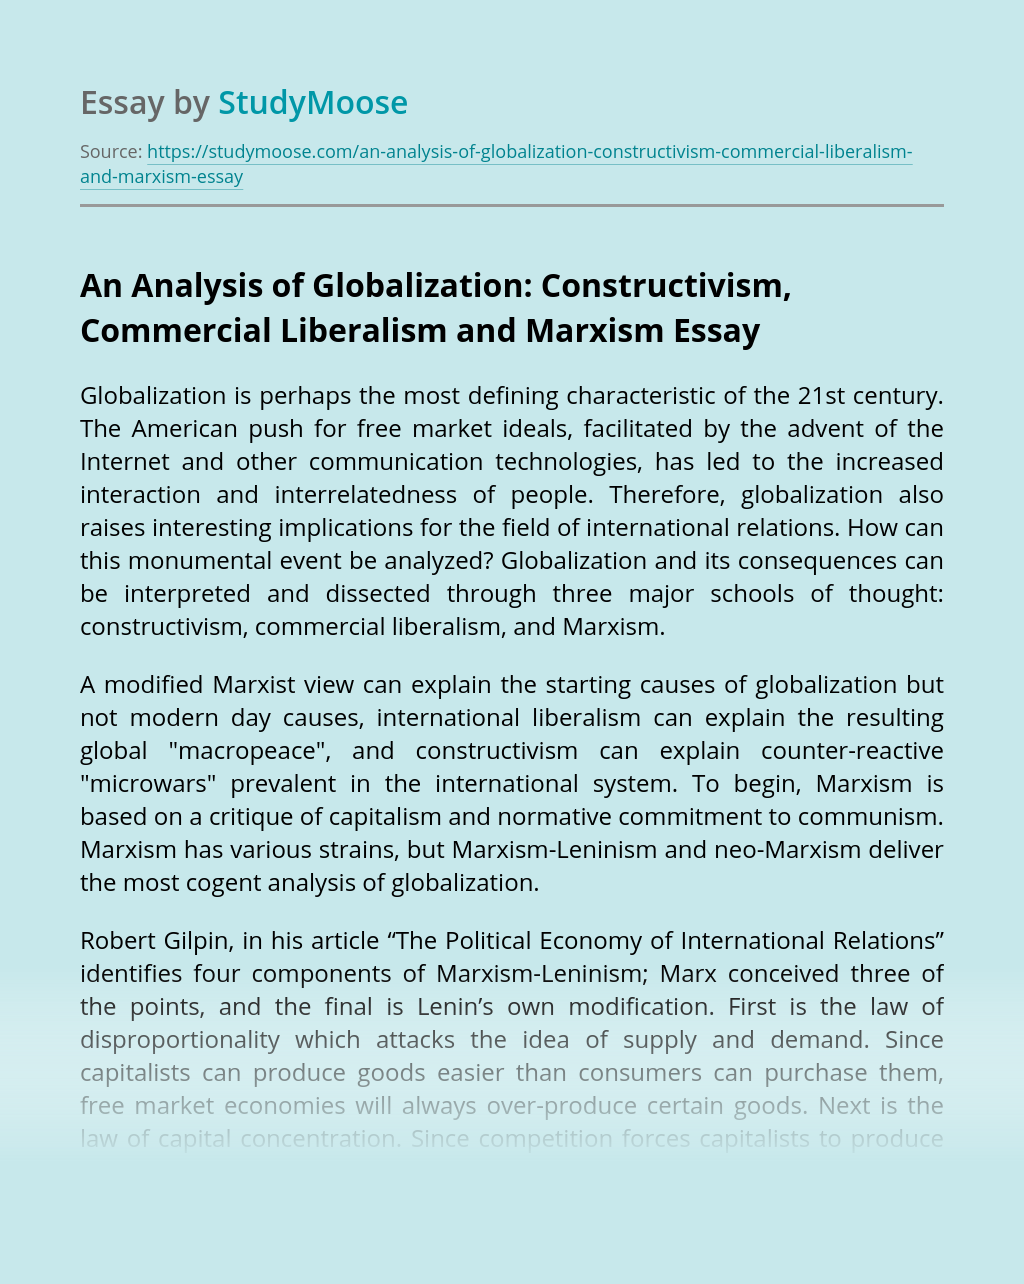 An Analysis of Globalization: Constructivism, Commercial Liberalism and Marxism